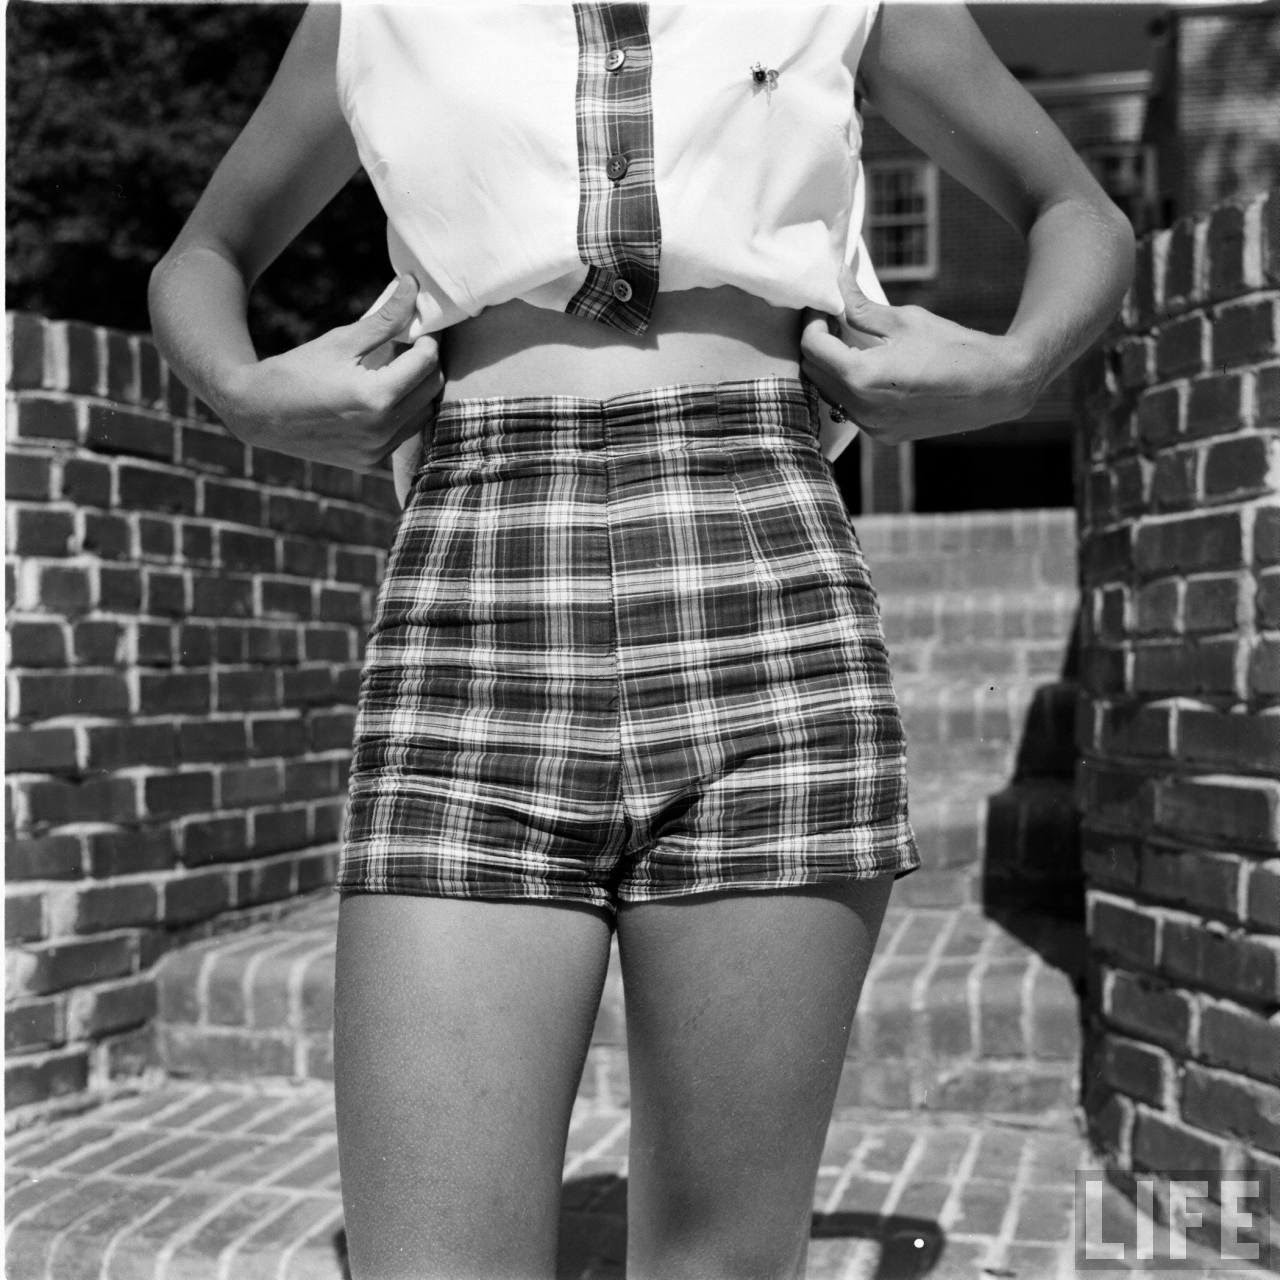 Short Shorts in the 1950's (11)